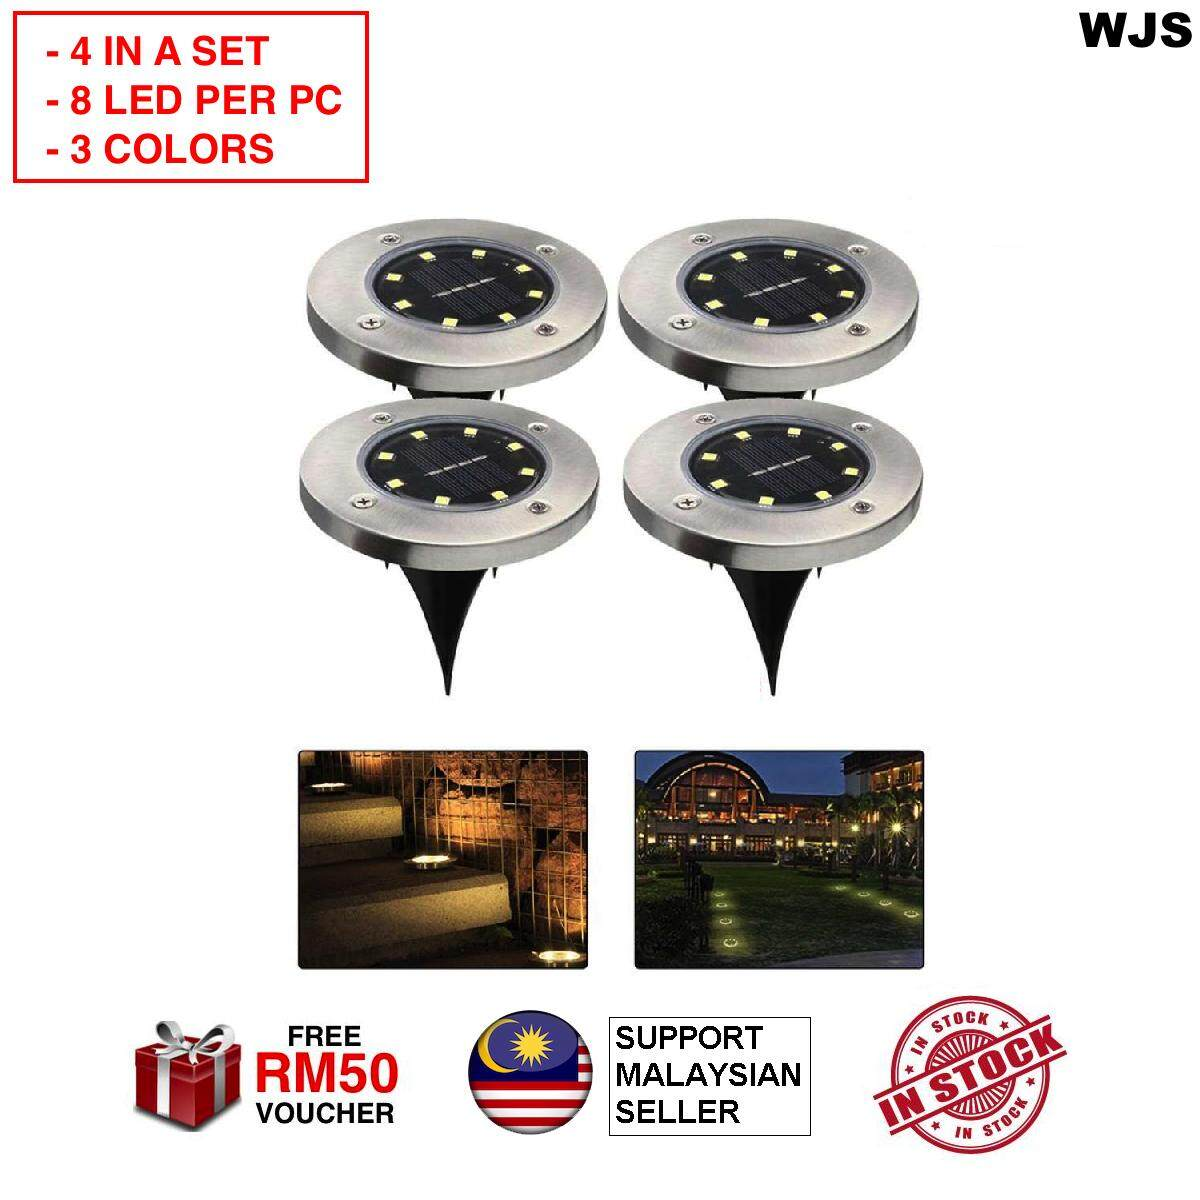 (4 IN A SET + 8 SOLAR LED) WJS Solar Path Lights Solar Powered Ground Lights Waterproof LED Solar Path Lights Solar Outdoor Lighting 8 LED For Driveway Yard Lawn Pathway Swimming Pool Landscape COOL WHITE / WARM WHITE / MULTICOLOR [FREE VOUCHER RM50]